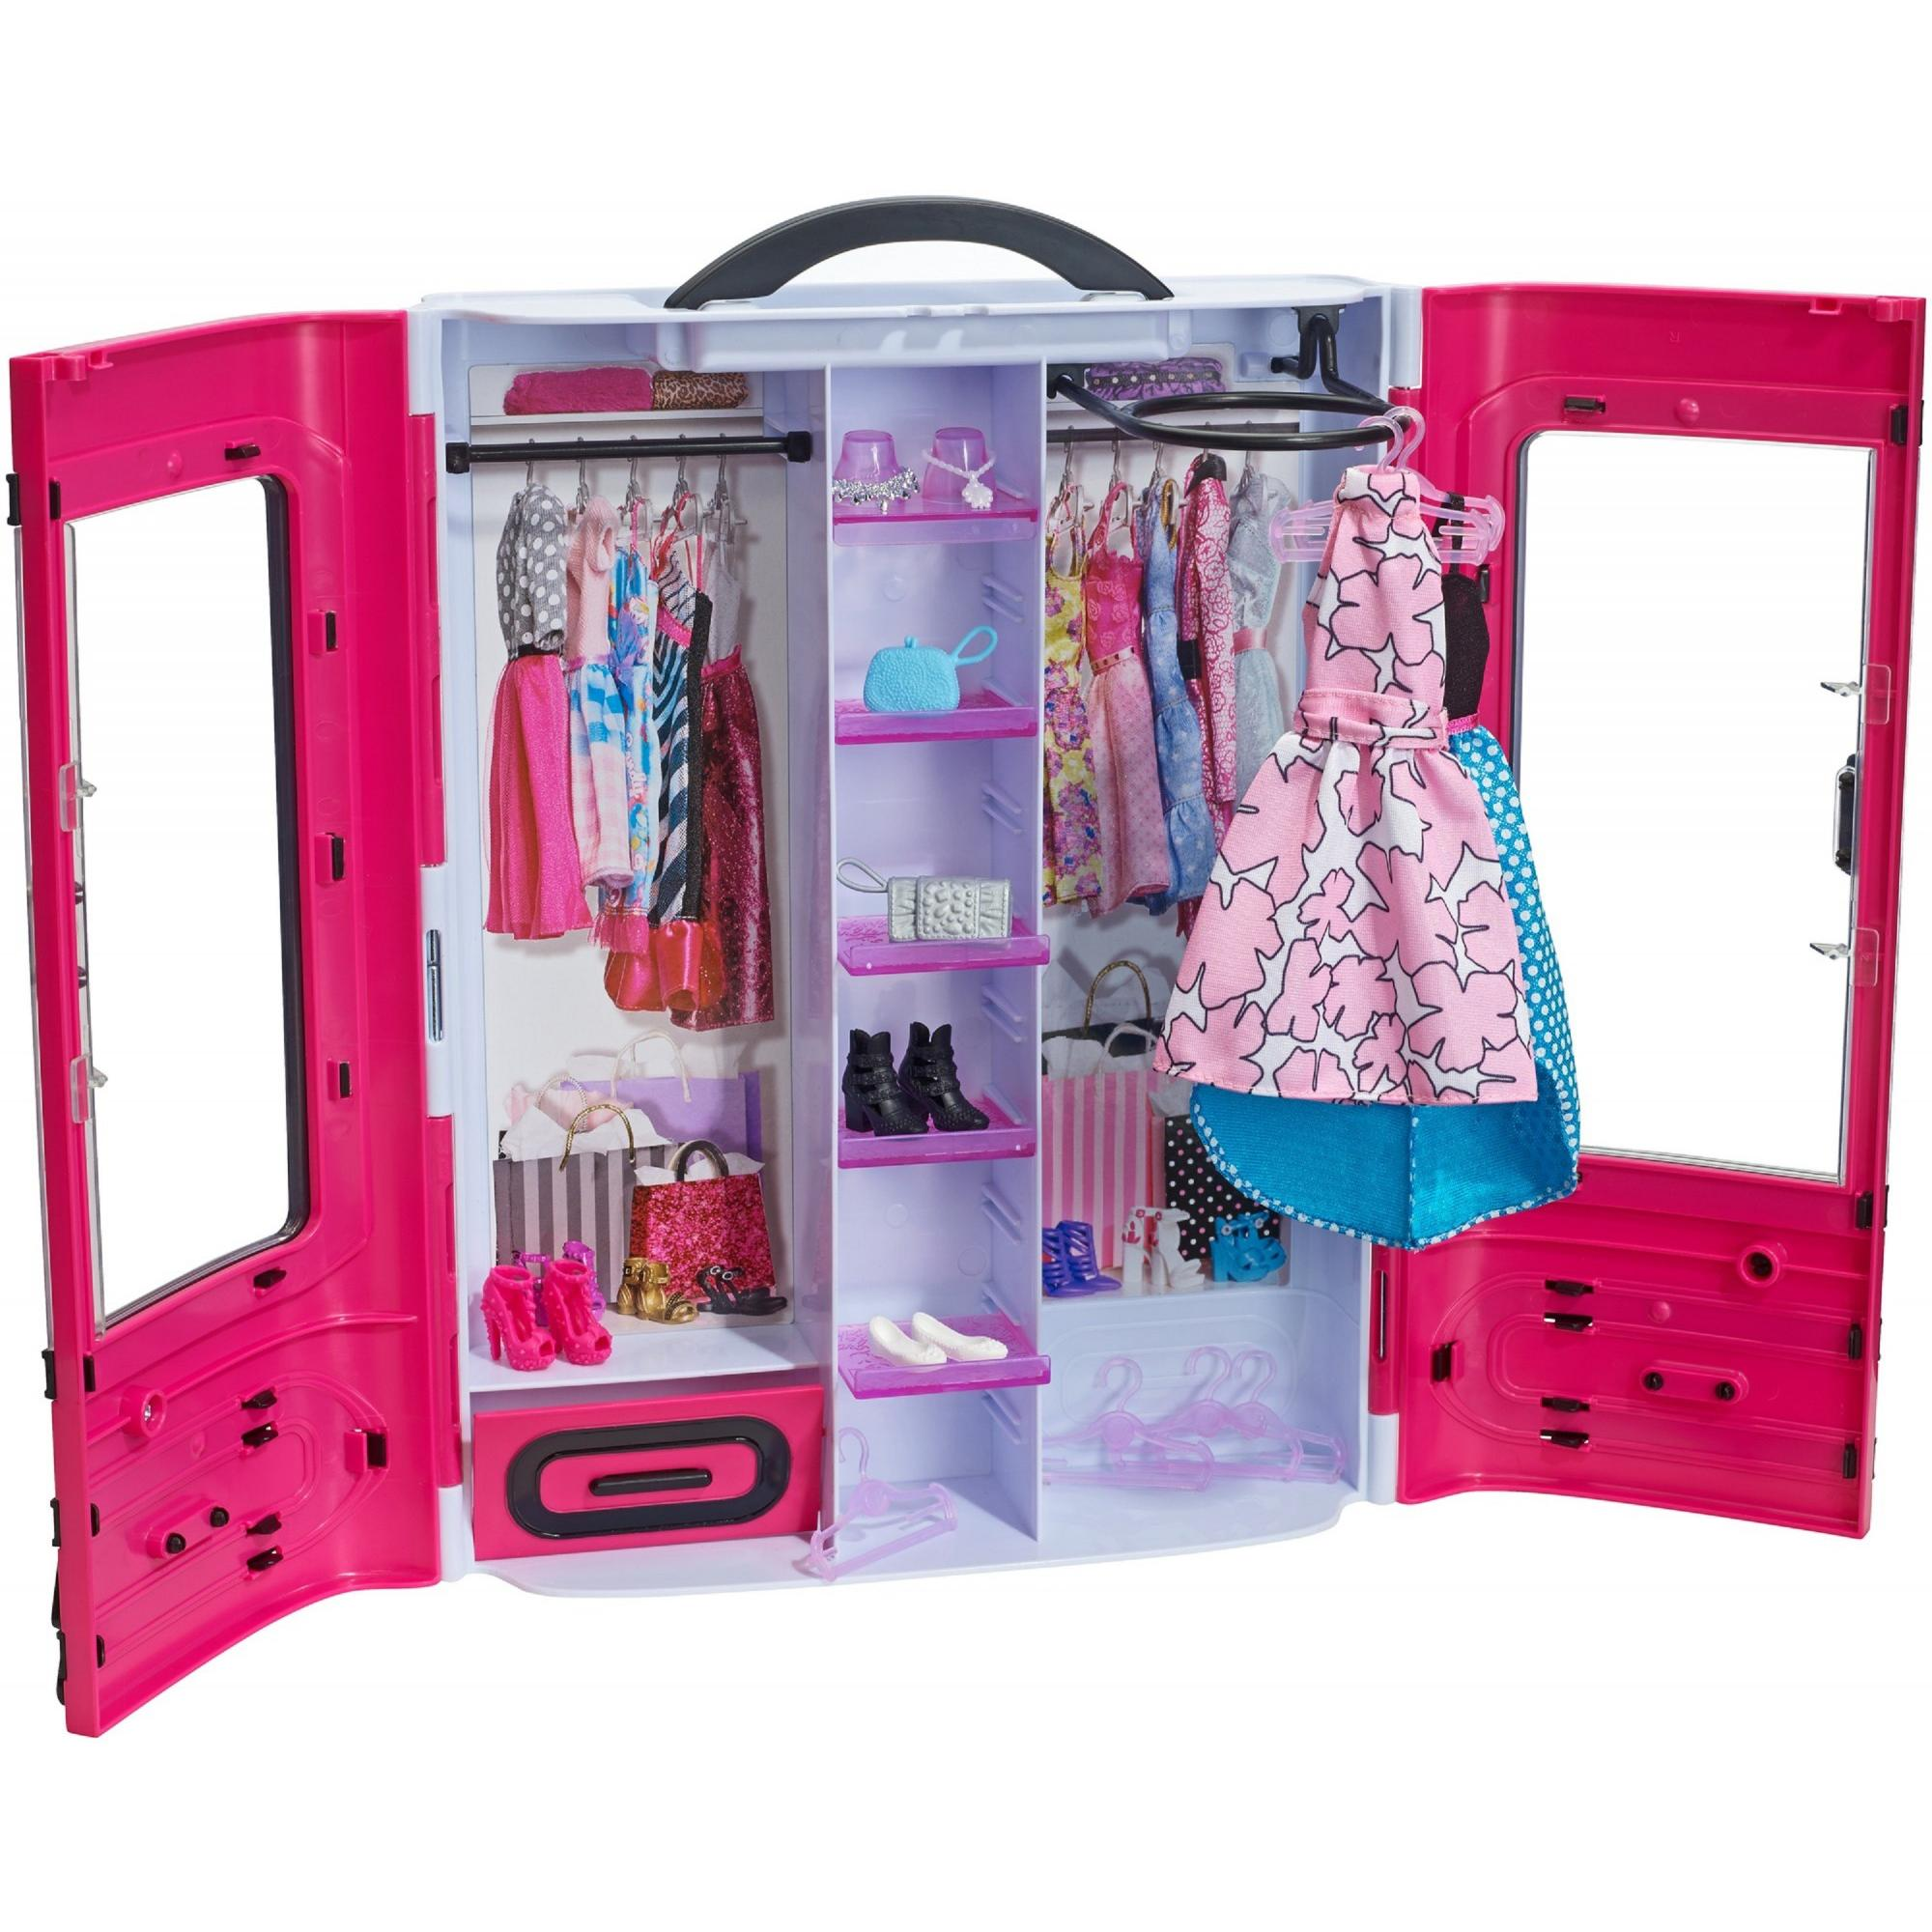 Barbie Fashionistas Ultimate Portable Closet, Pink with 15+ Pieces